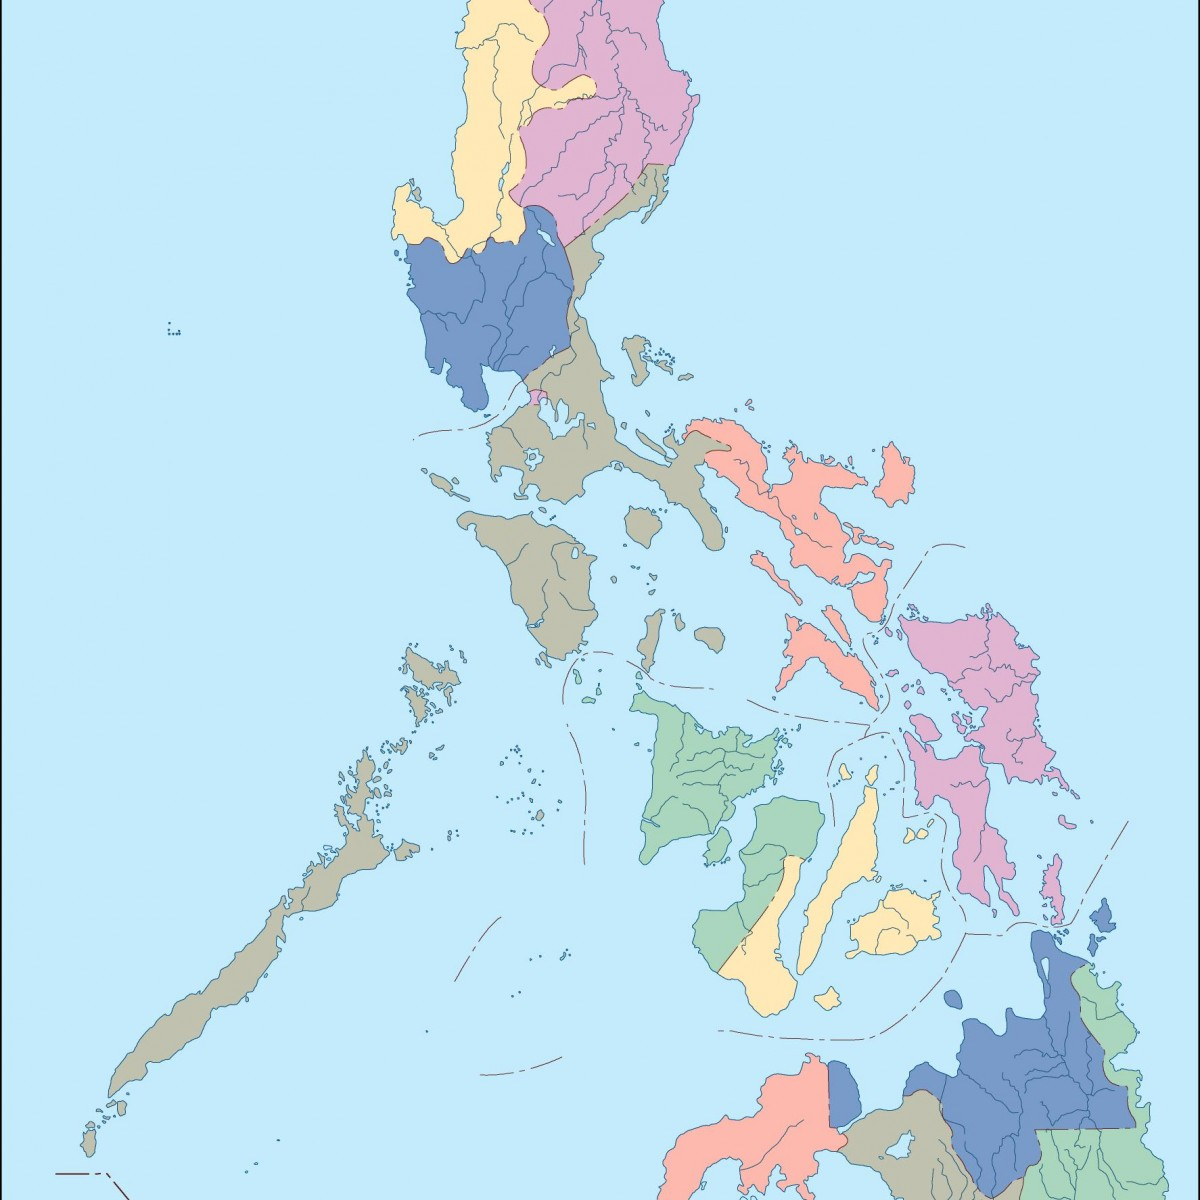 philippines blind map on map showing philippines, map of philippines in imperialism, map of philippines in asia, map of bohol island philippines, map of morocco and surrounding countries, map of philippines on world map,